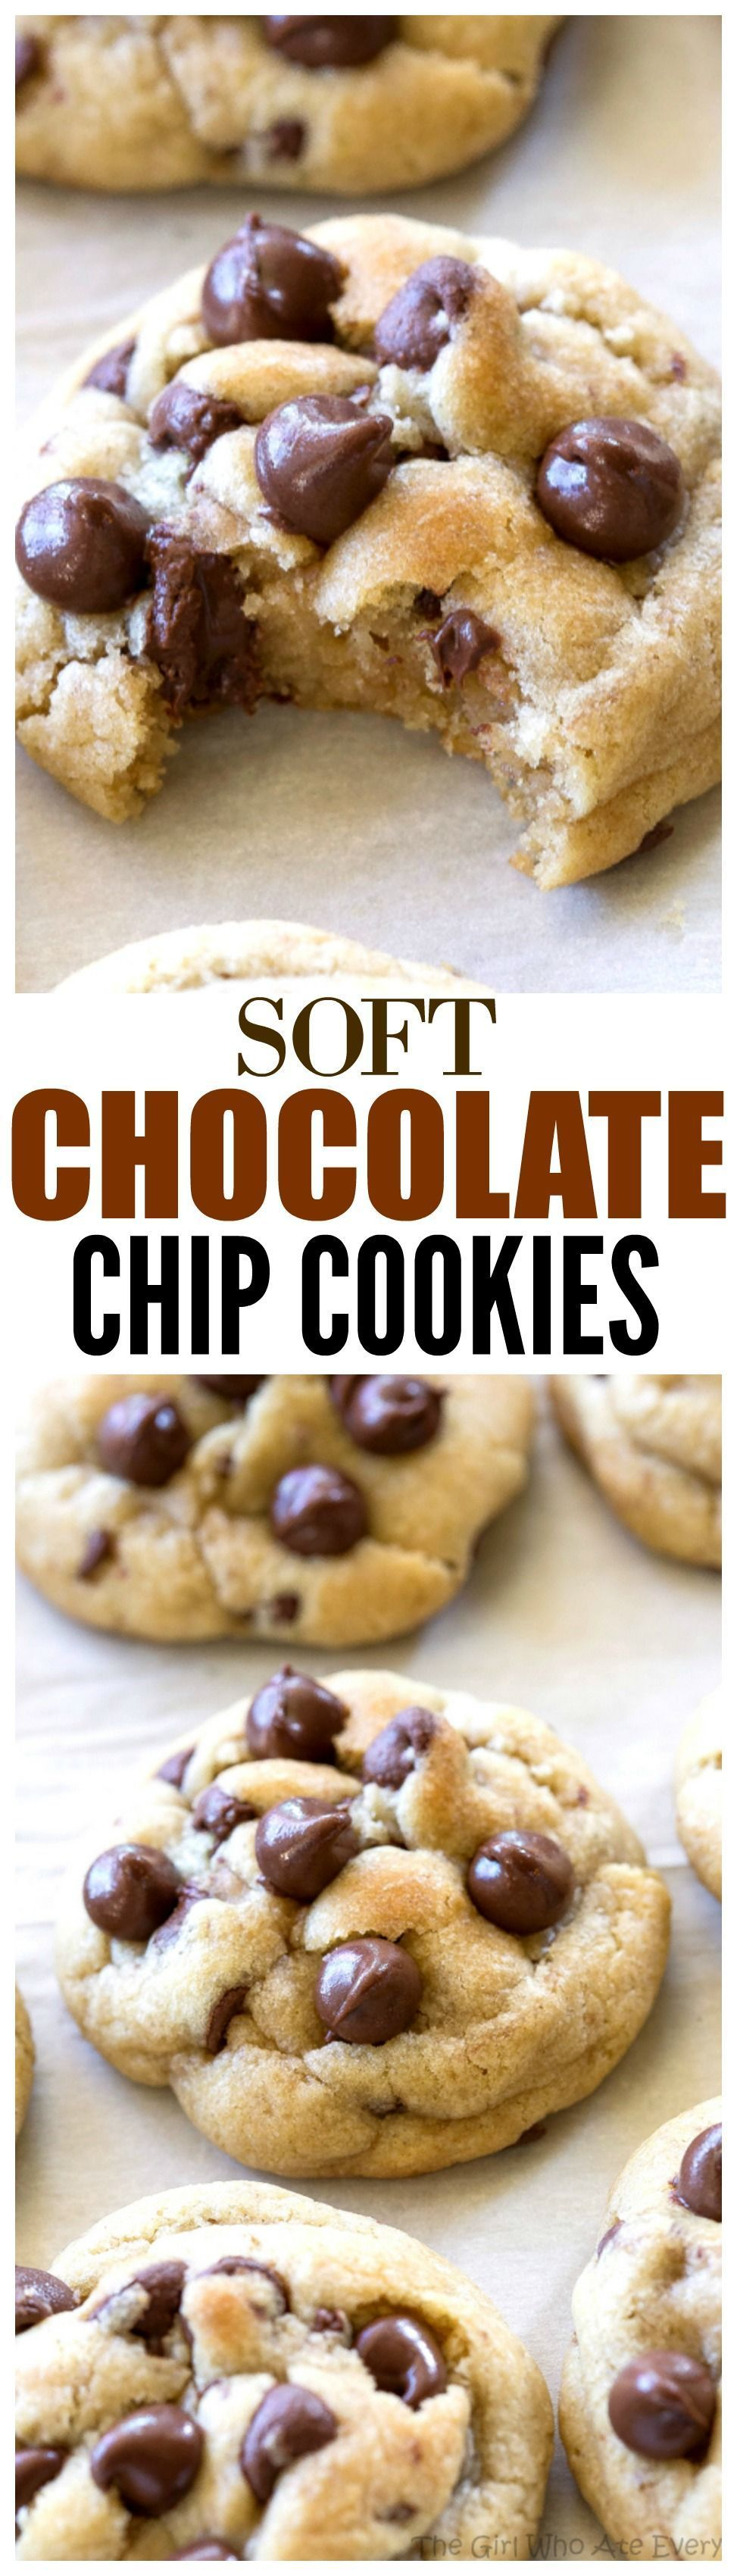 Chip Cookies Chocolate Chip Cookies - a tried and true recipe with a secret ingredient to keep them soft! the-girl-who-ate-Chocolate Chip Cookies - a tried and true recipe with a secret ingredient to keep them soft! the-girl-who-ate-